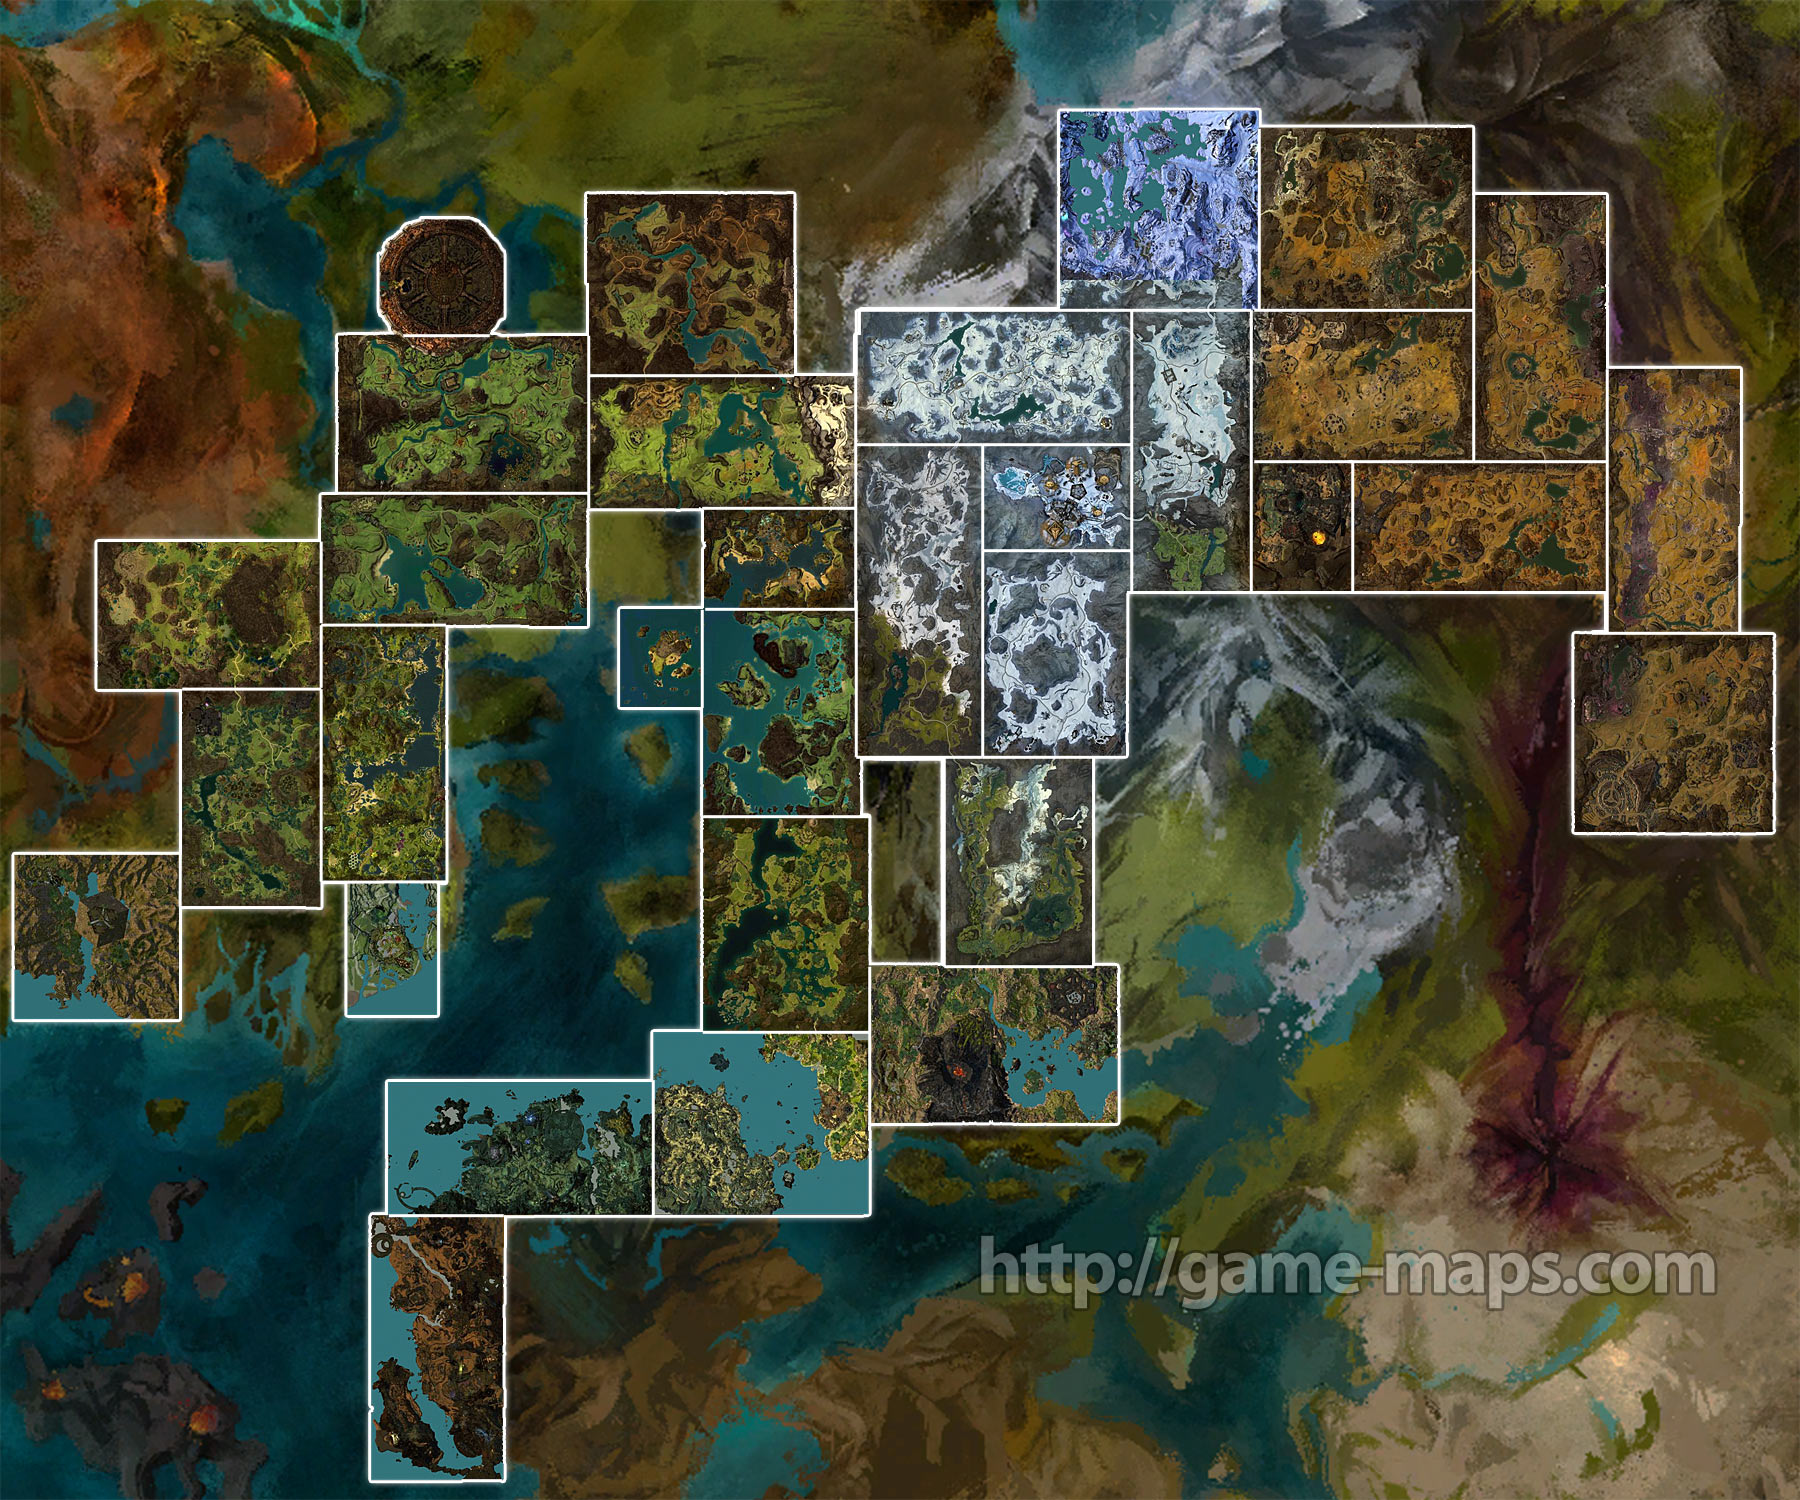 I am new to guilds of war 2, how big is map compared to skyrim ...